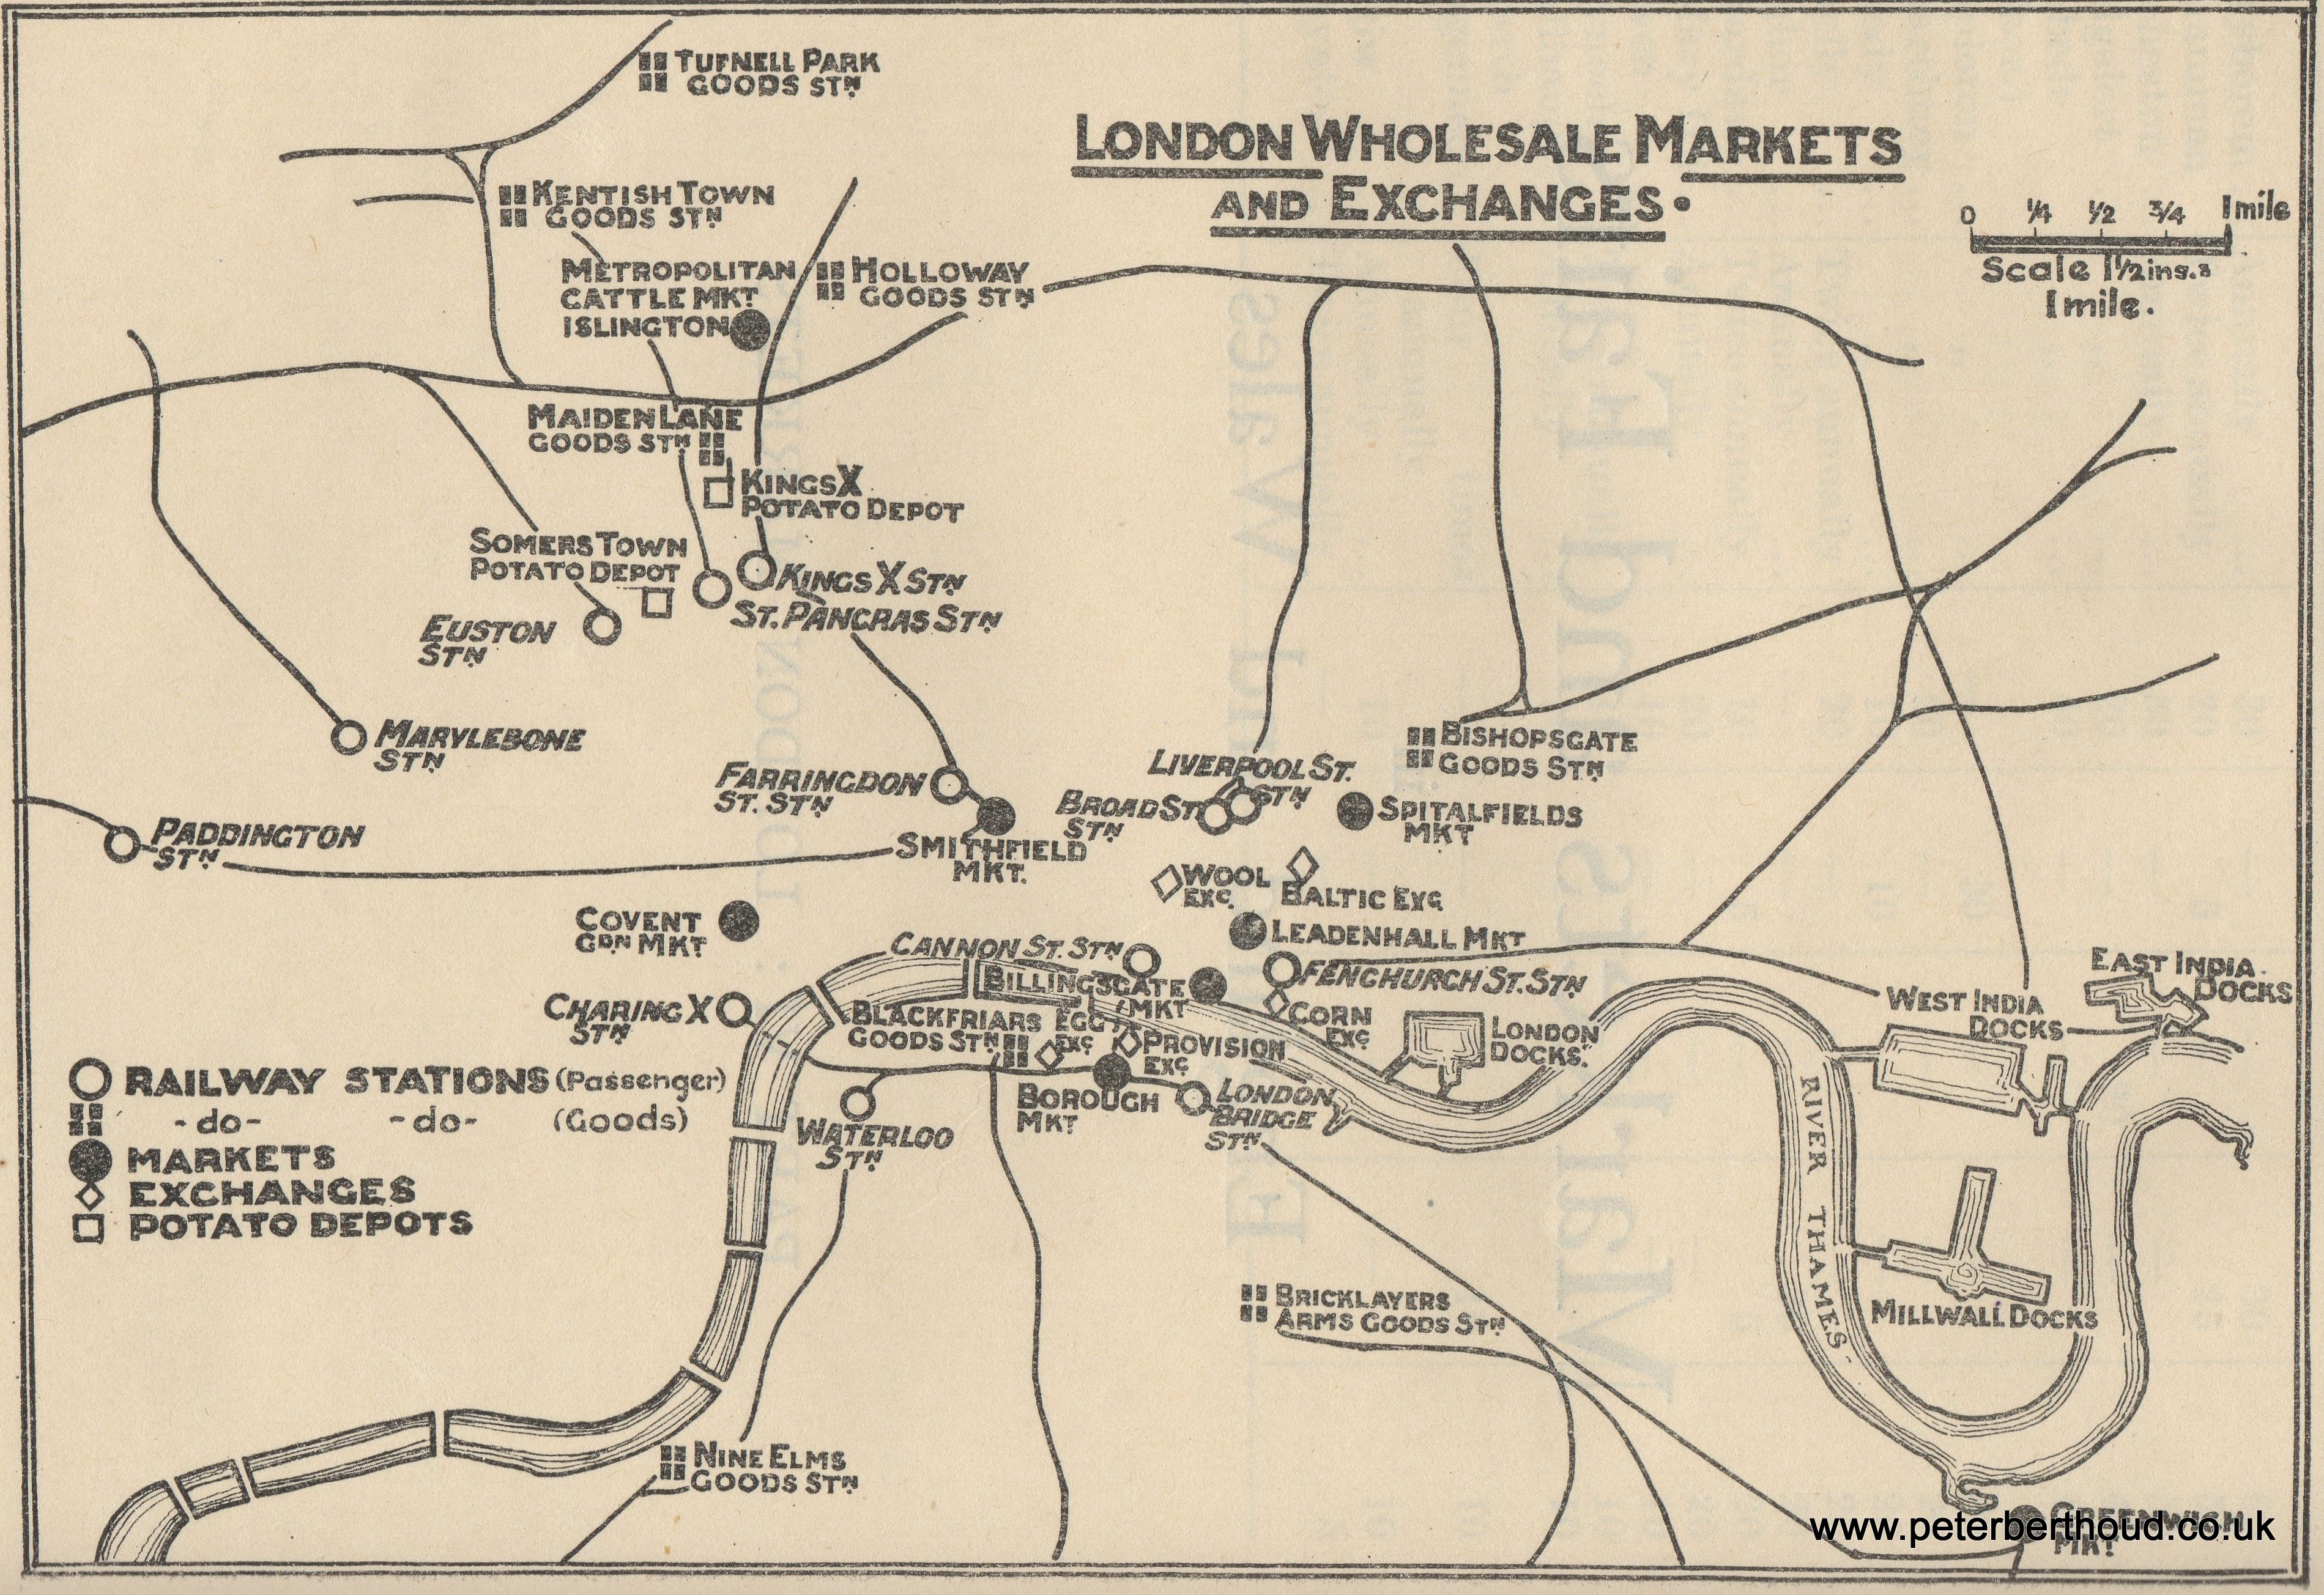 London Wholesale Markets and Exchanges in 1930